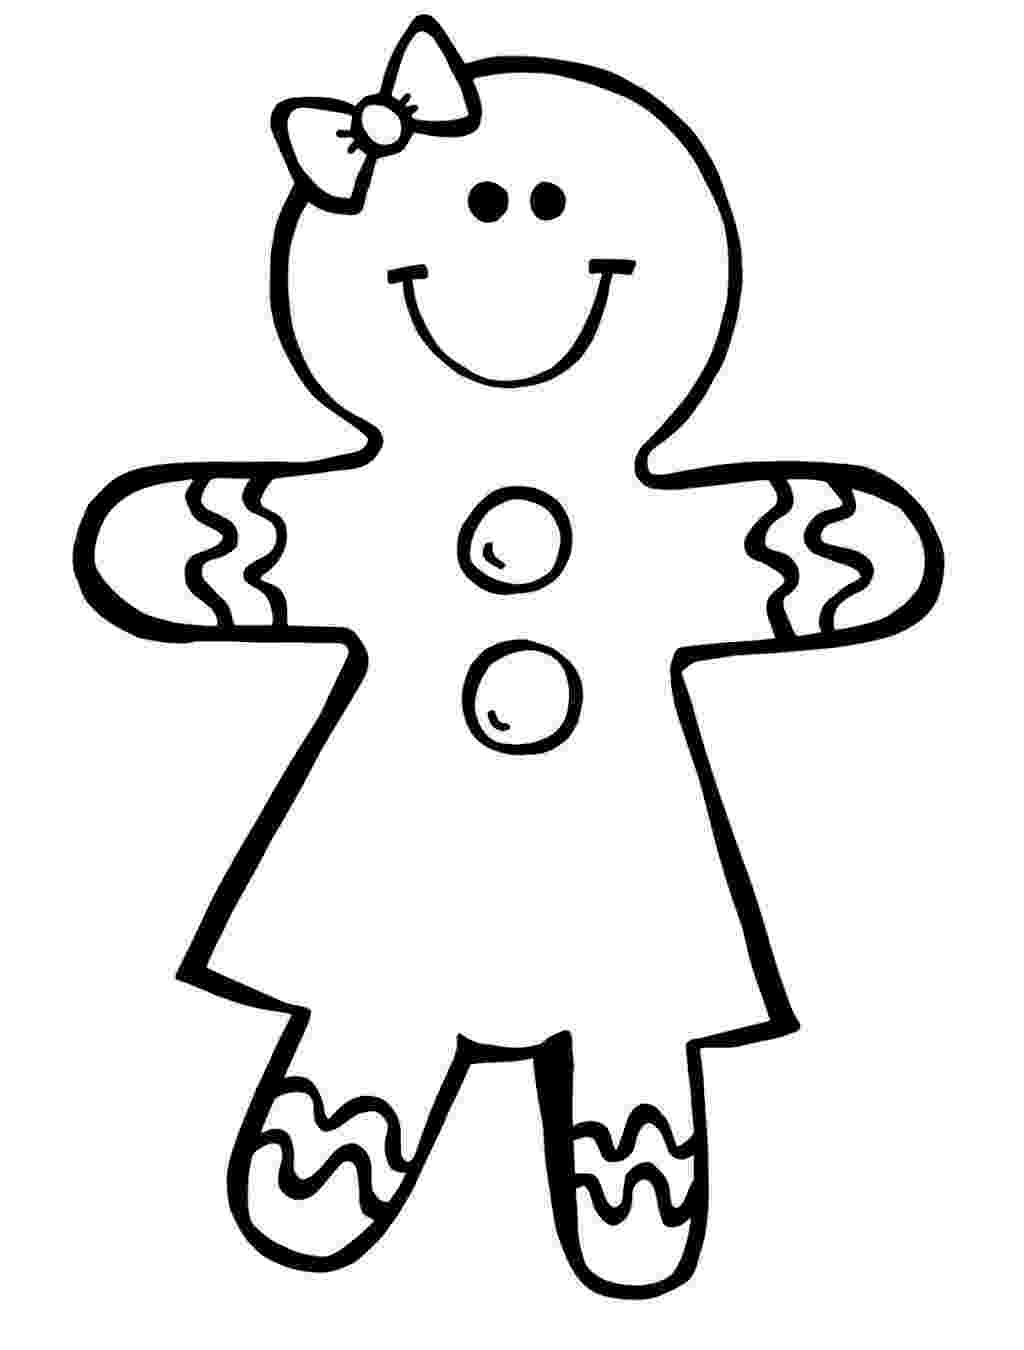 gingerbread color gingerbread man coloring pages to download and print for free gingerbread color